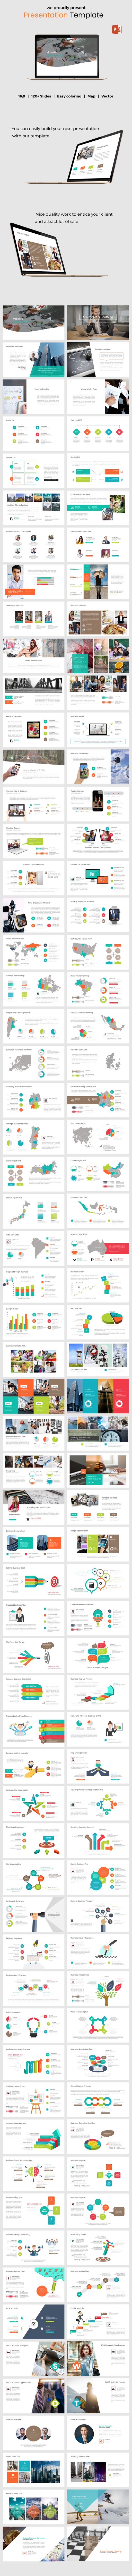 Majestik Powerpoint Template - Business PowerPoint Templates